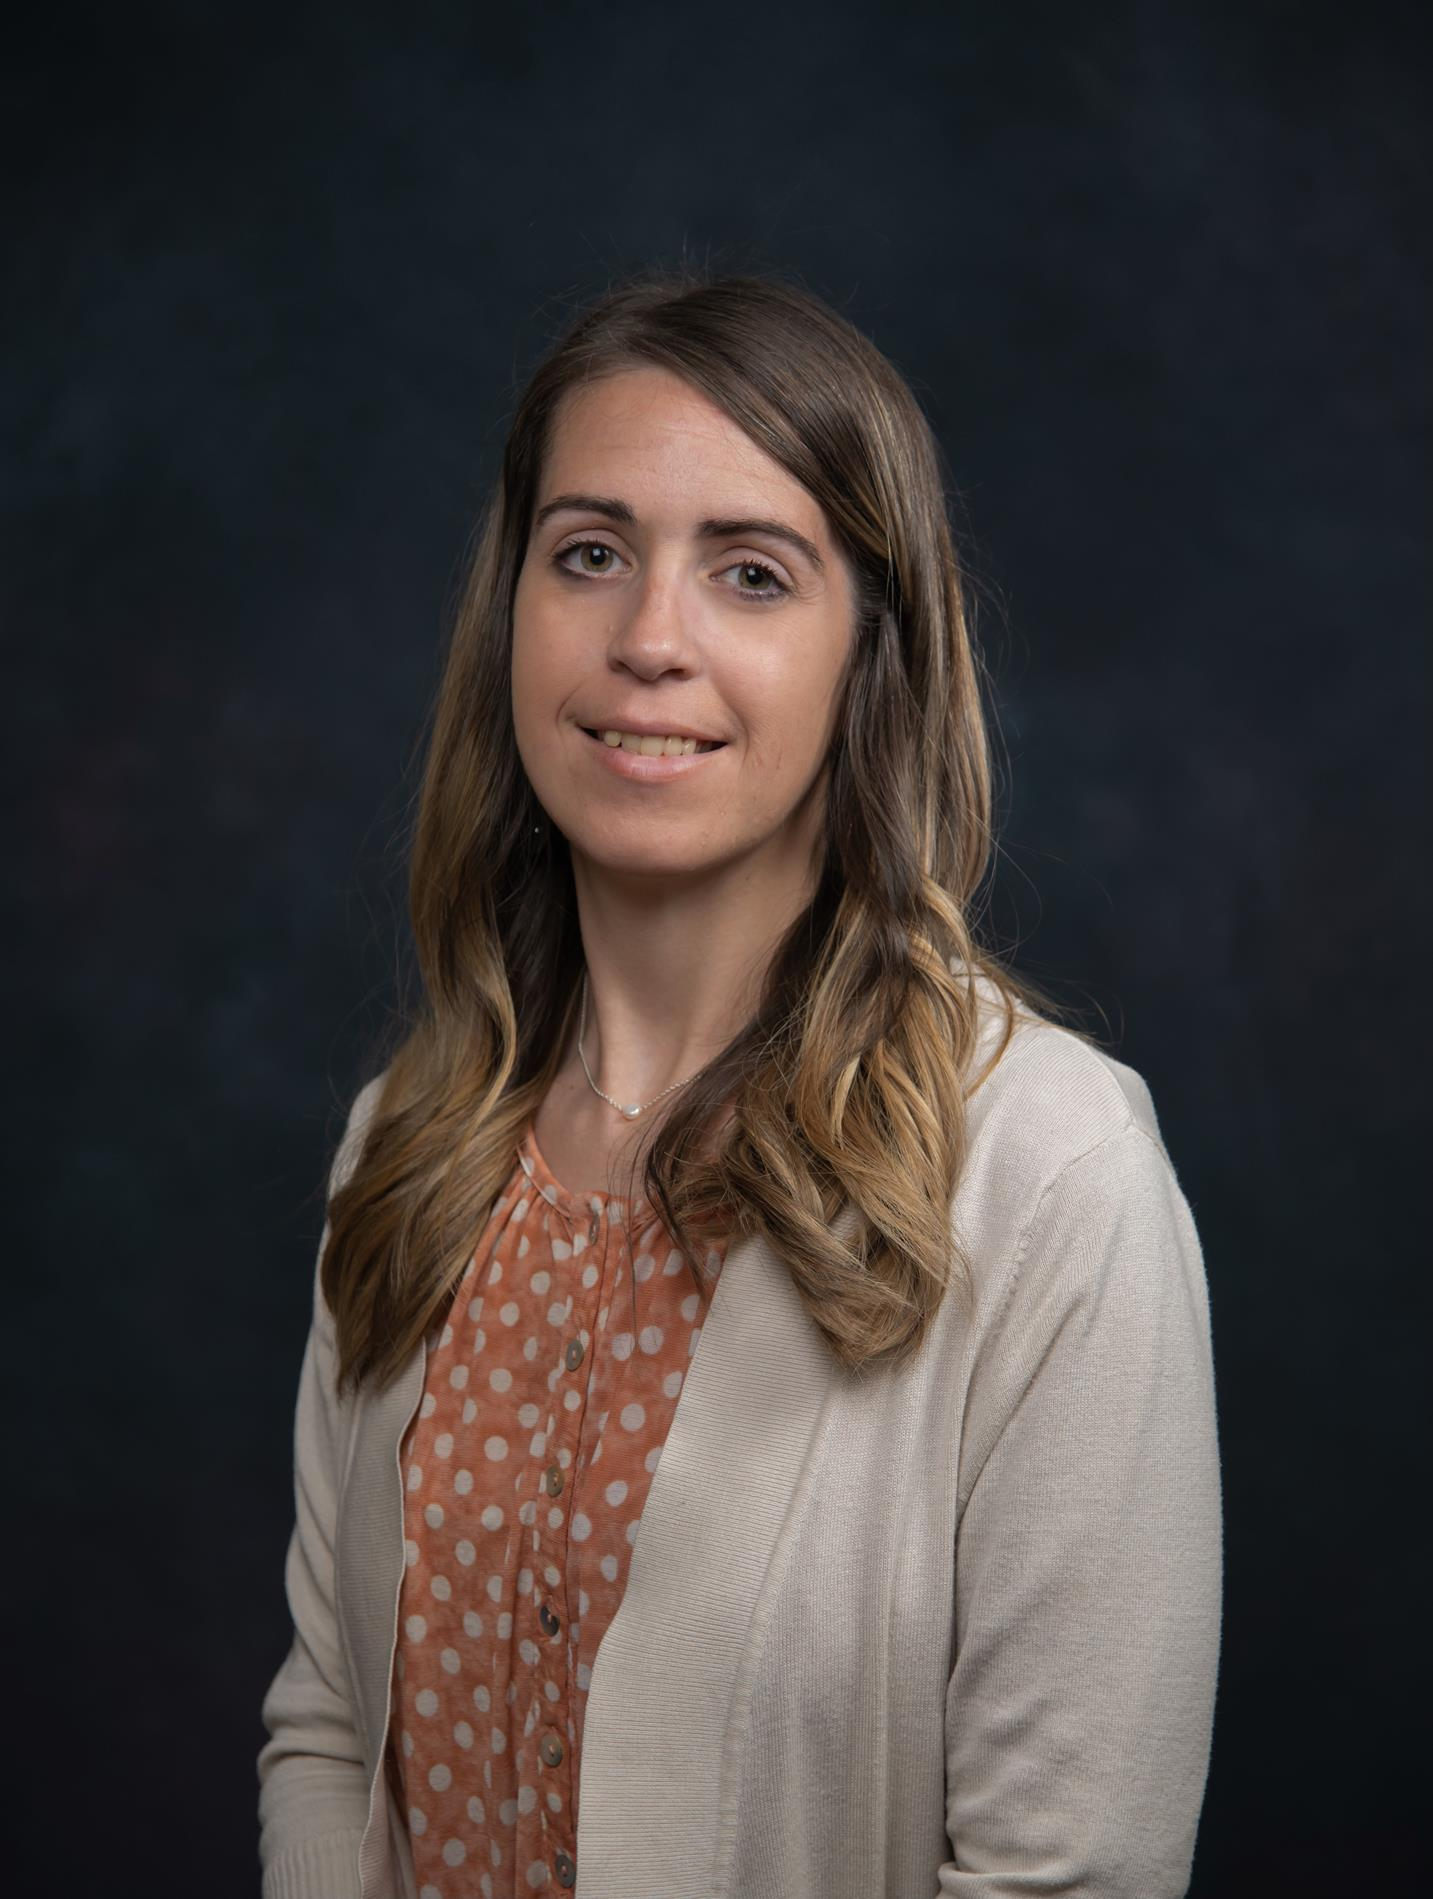 Ashley Graves, Public Relations Specialist